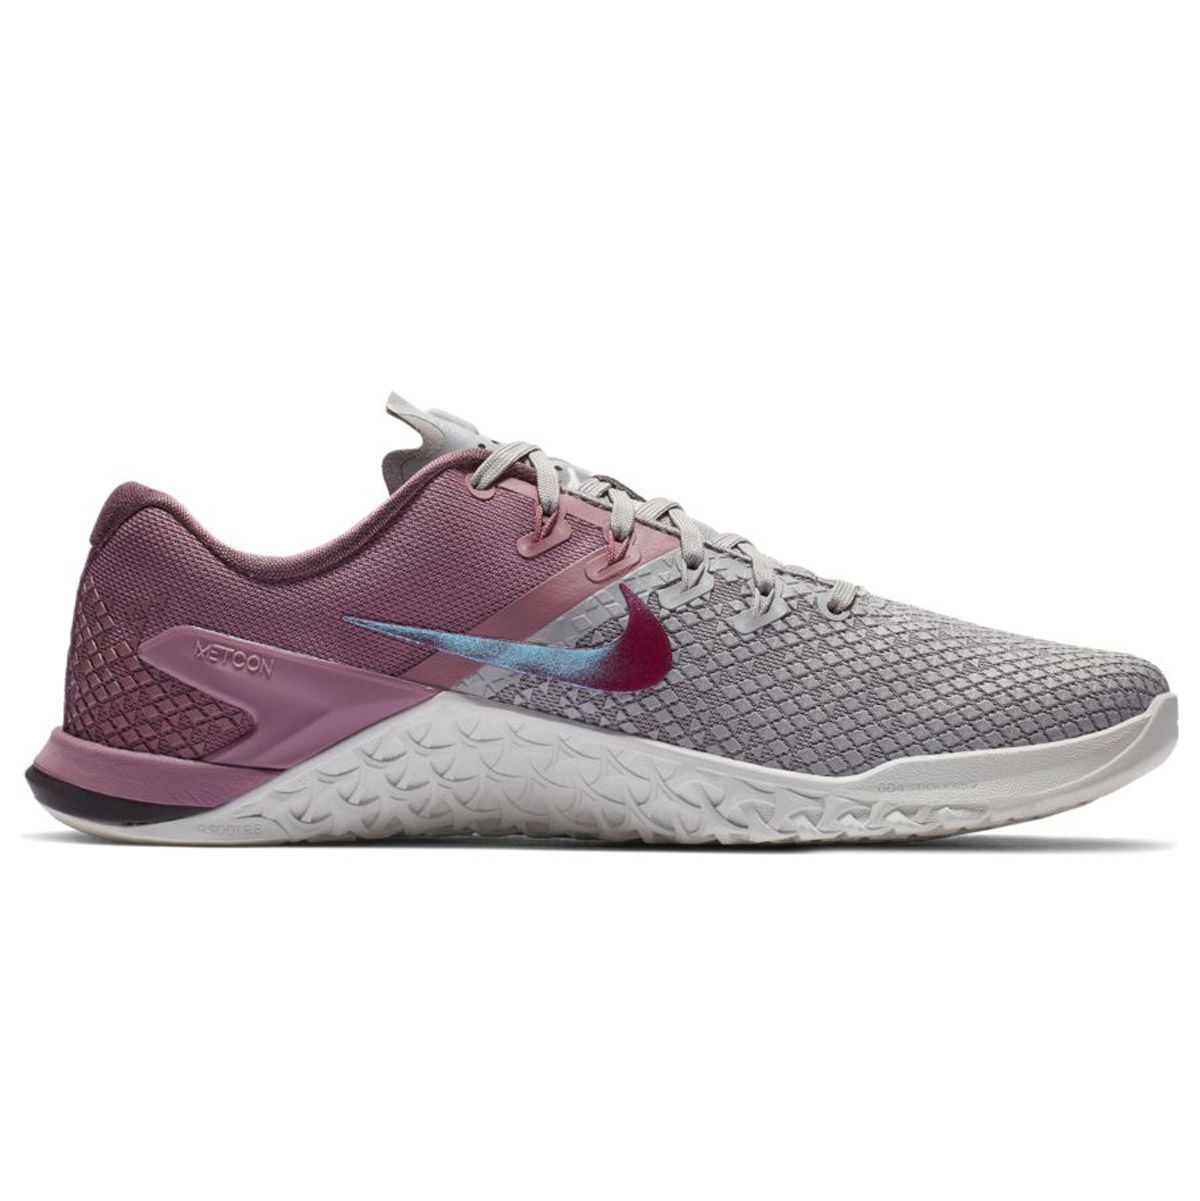 Nike Metcon 4 XD Womens Training Shoe